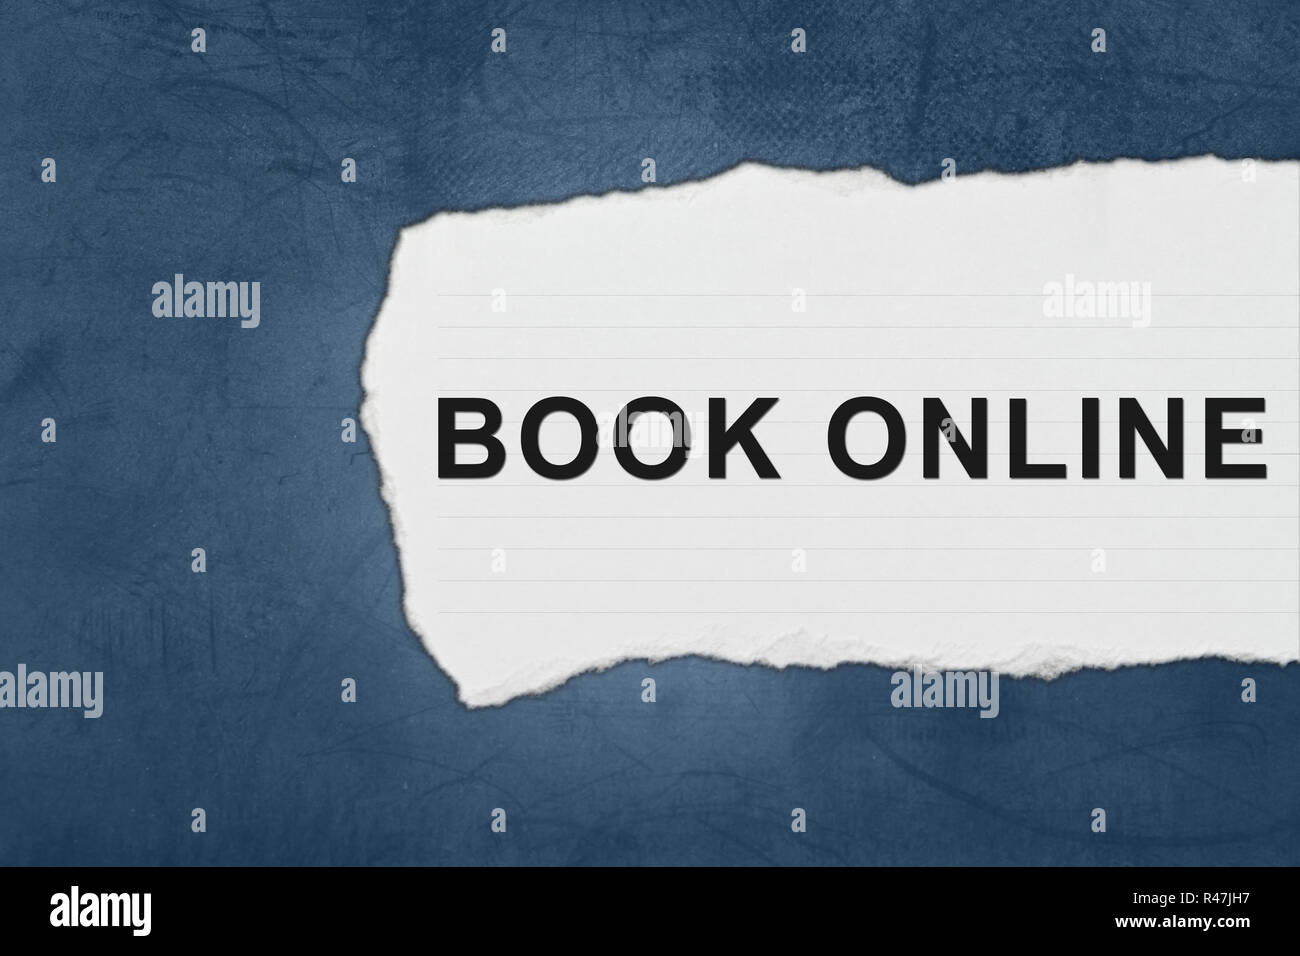 book online with white paper tears - Stock Image